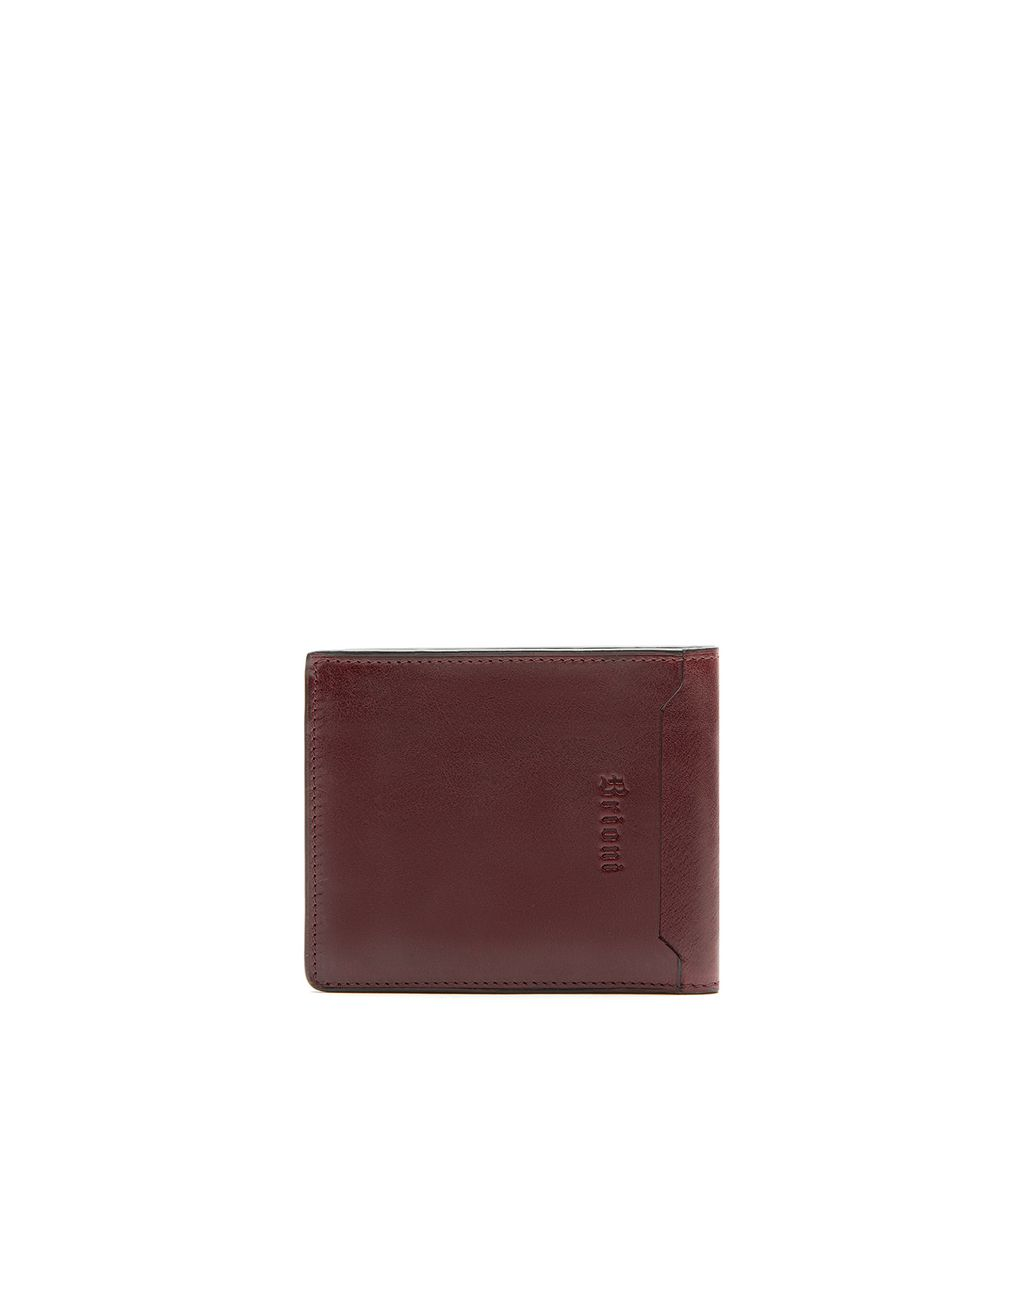 BRIONI Oxblood Slim Wallet Leather Goods U d